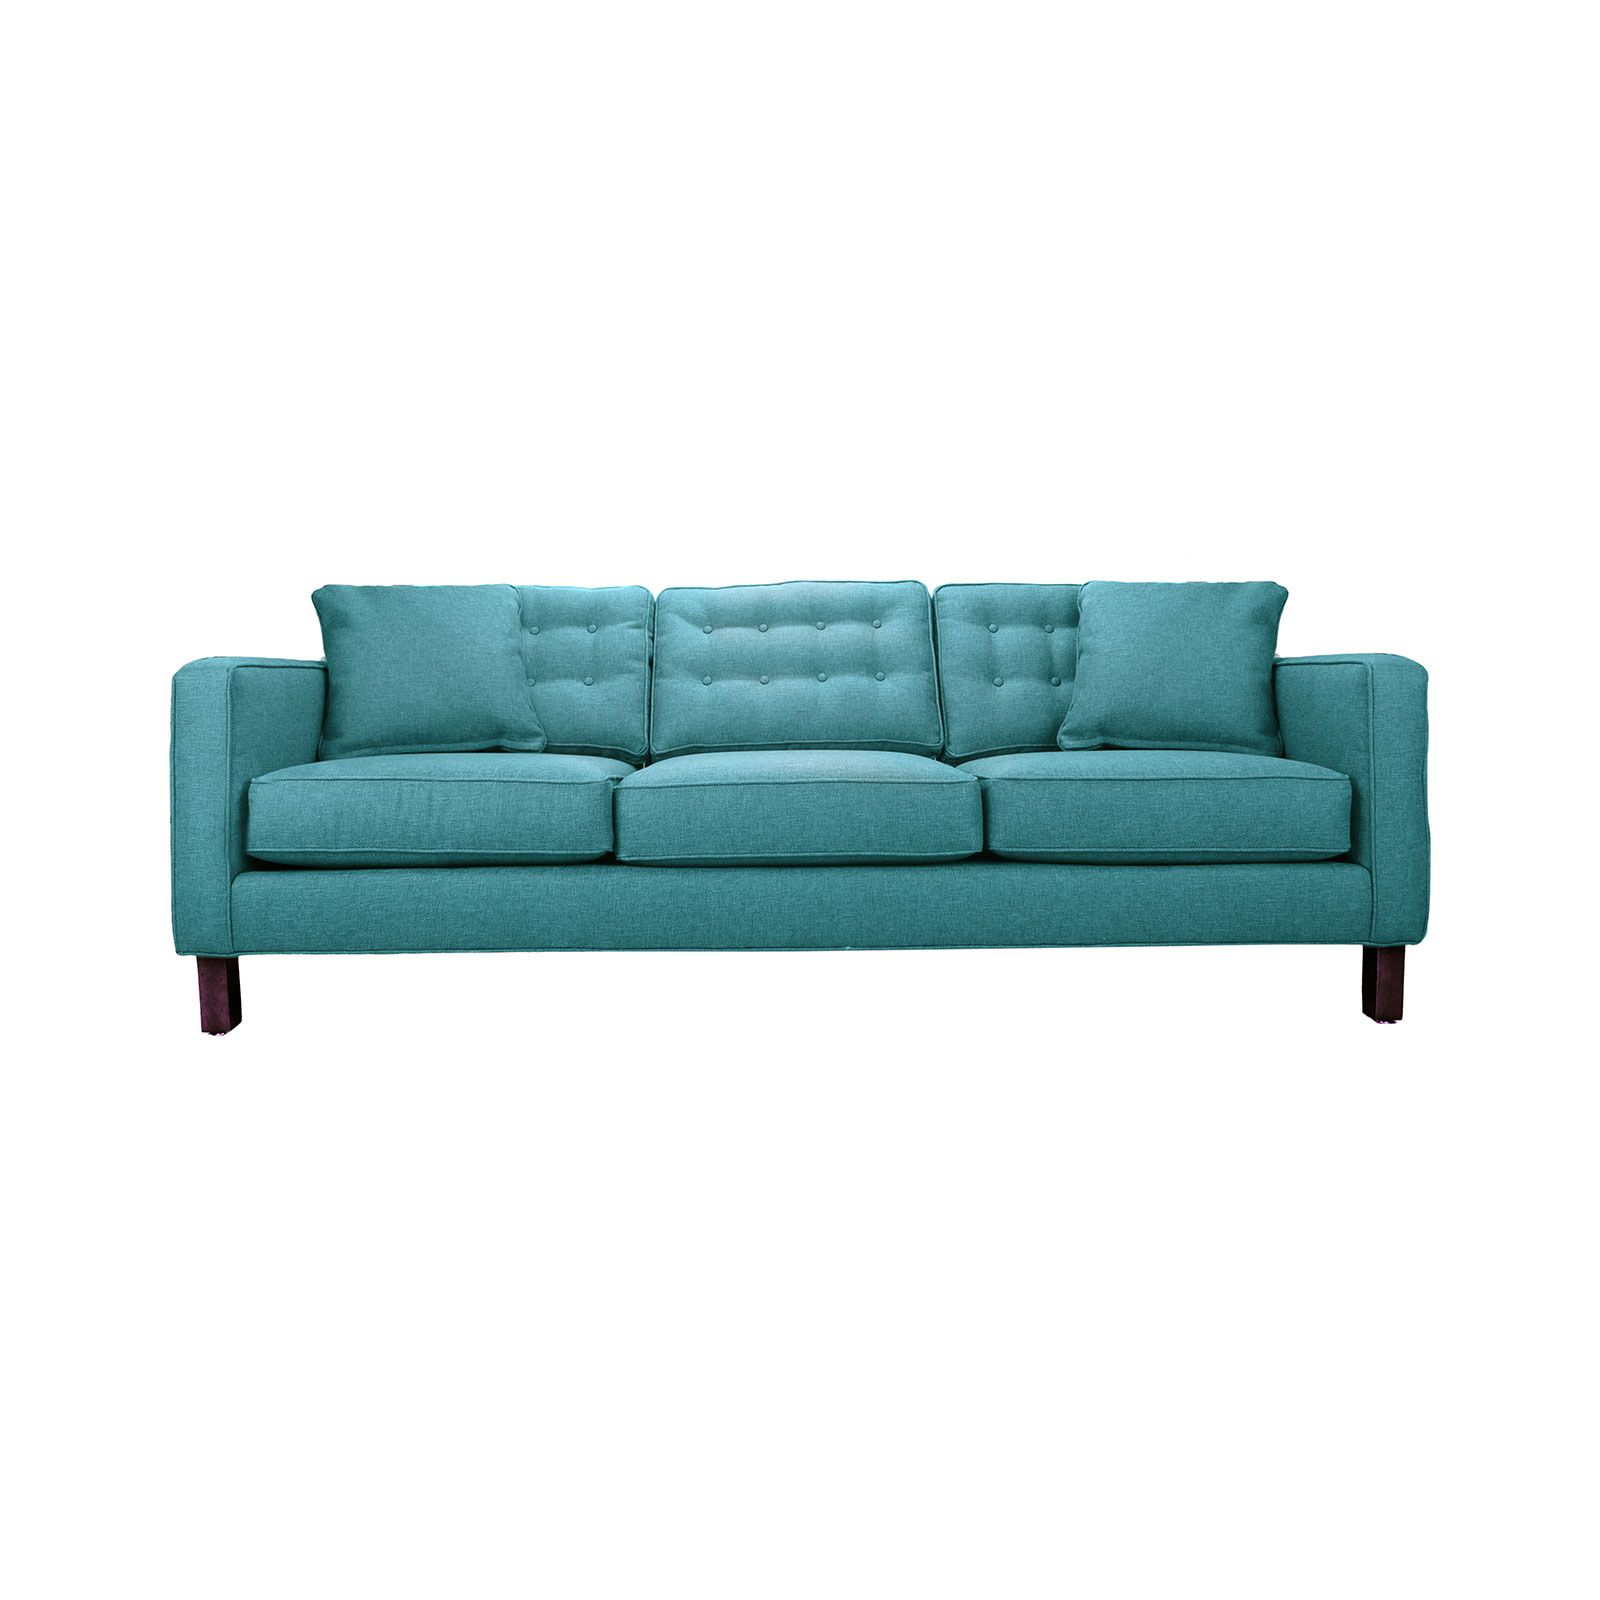 tufted turquoise sofa corner sofas beds uk pin by james hummel on living room furniture